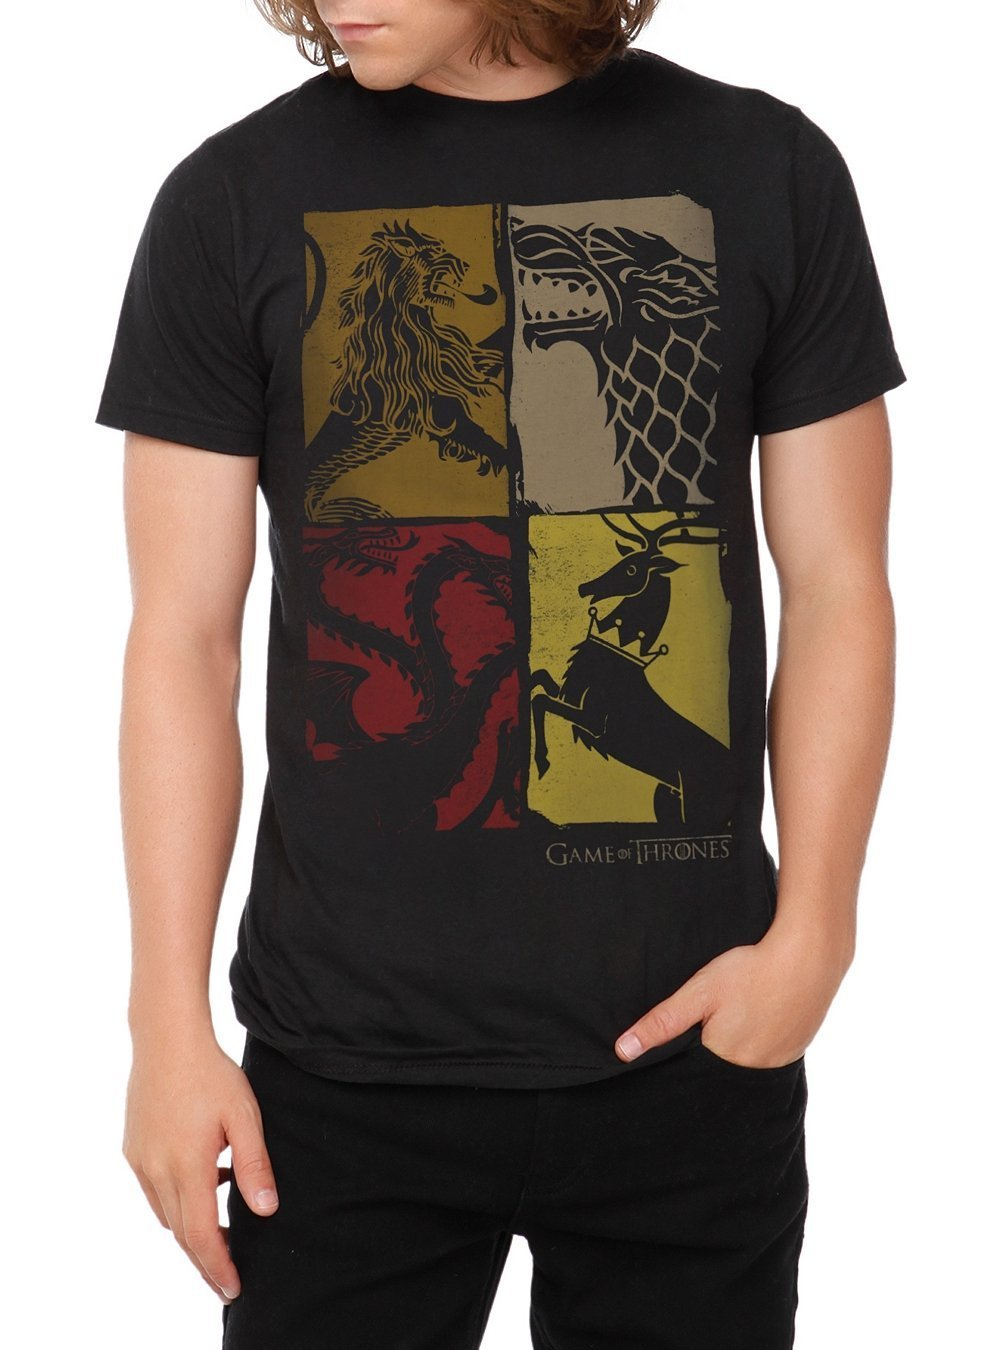 Four Houses Slim-Fit T-Shirt